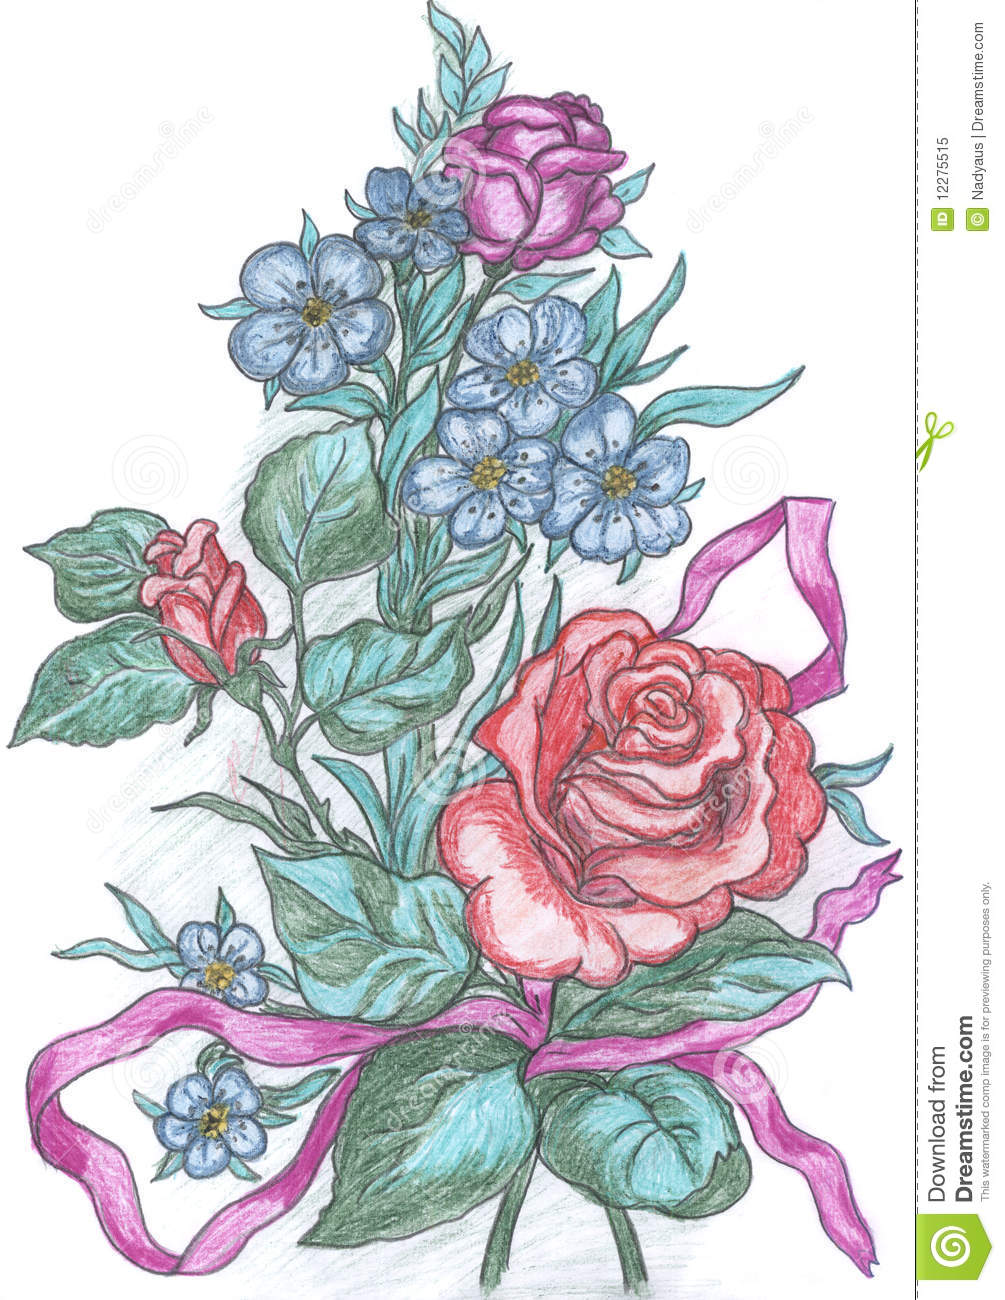 Flowers Sketch Drawing Of Greeting Card Stock Illustration - Illustration 12275515